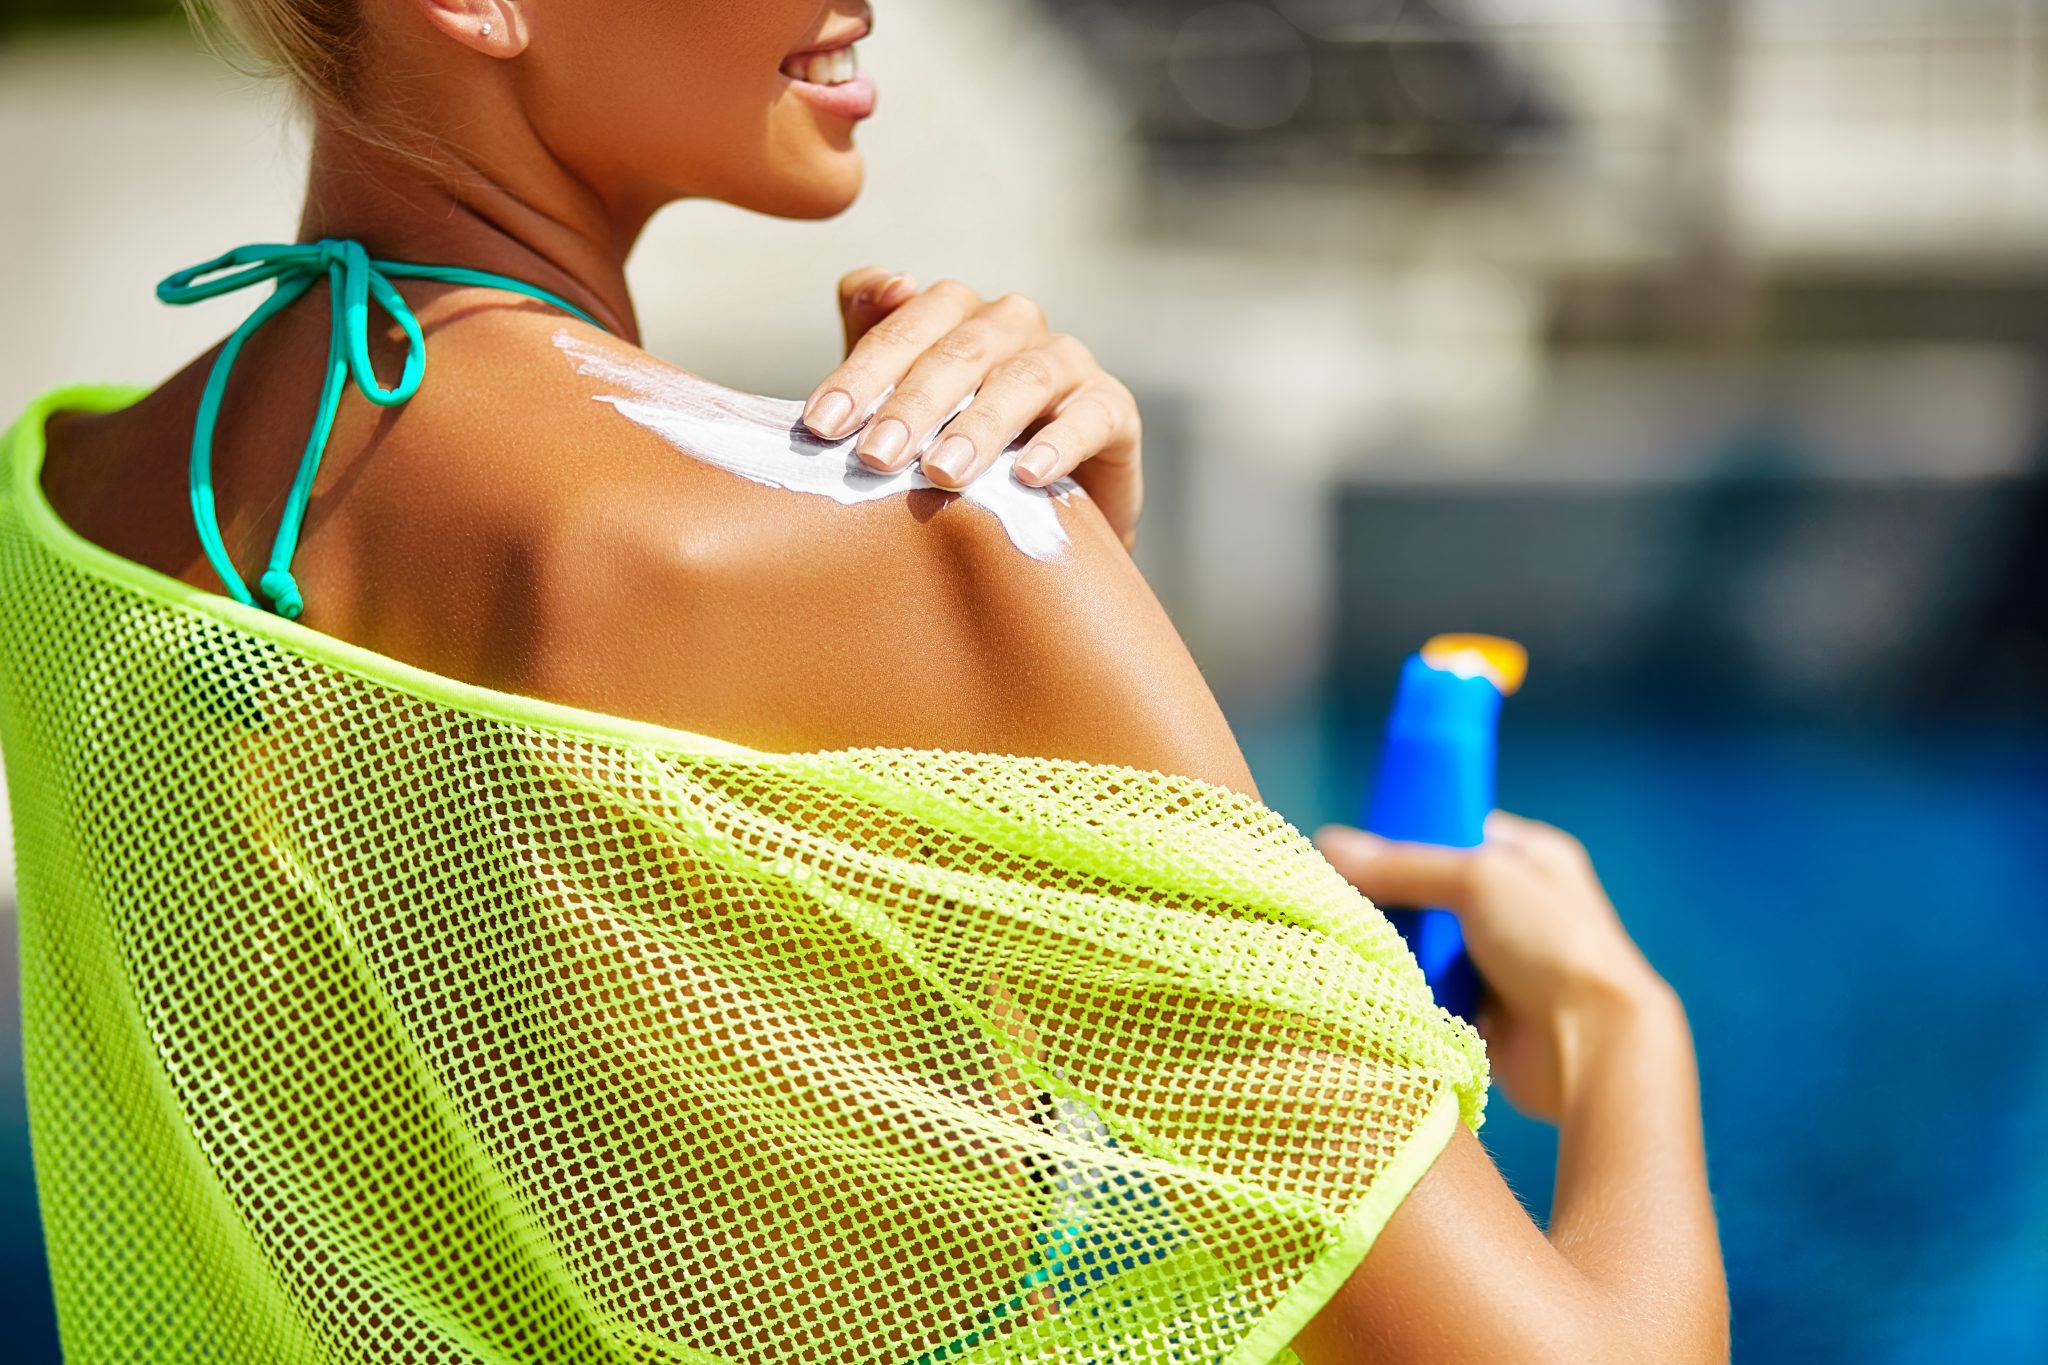 Blonde woman applying sunscreen